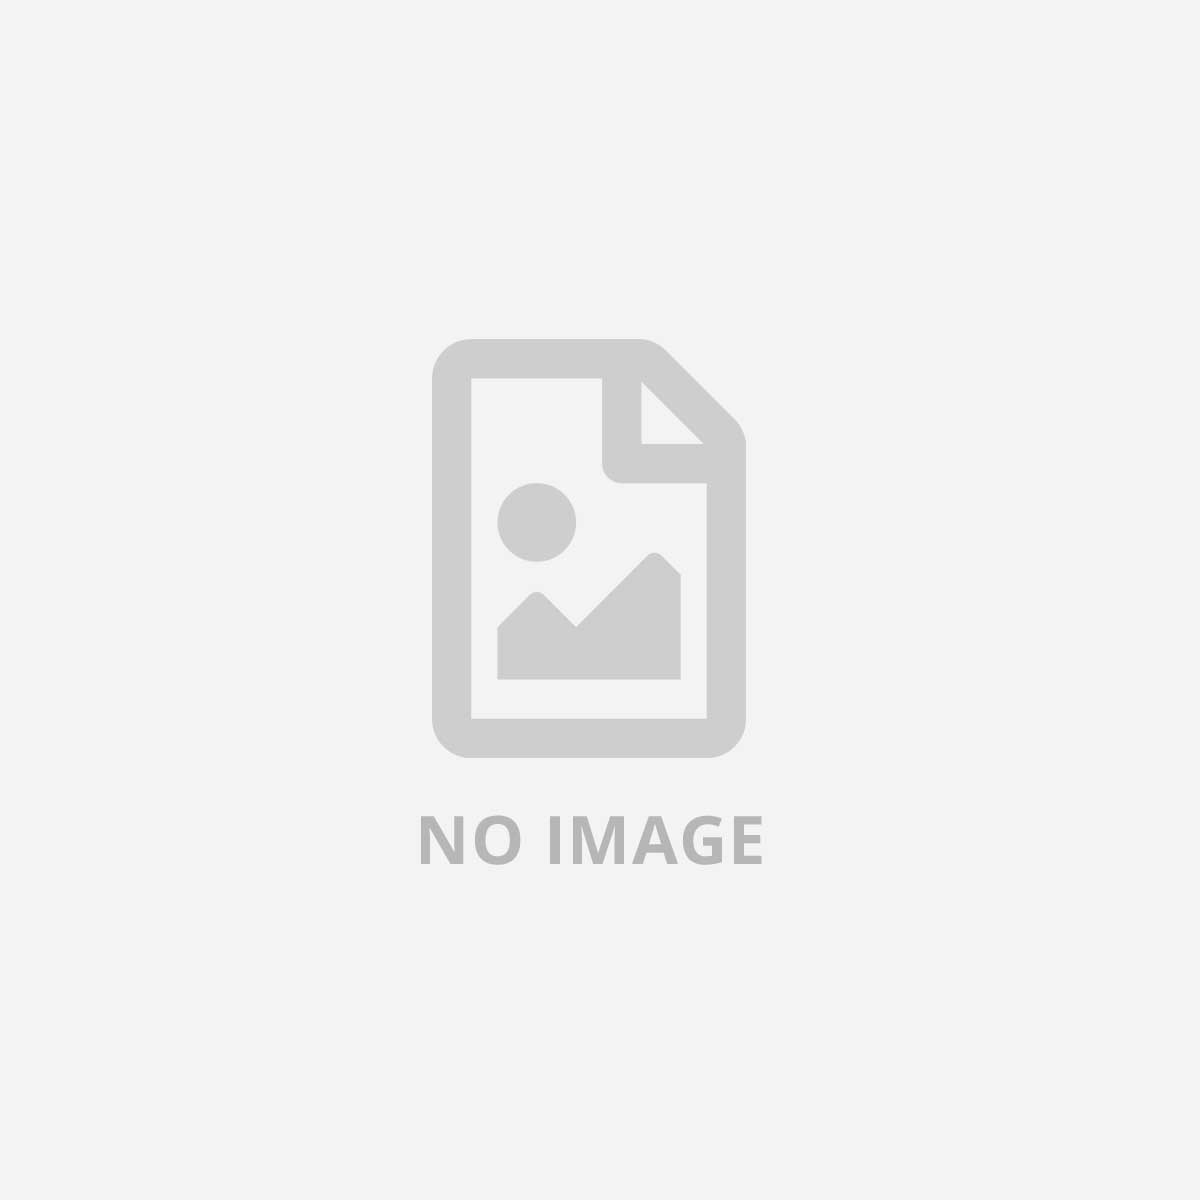 POLYCOM SOUNDSTATION IP5000 CONF PHONE